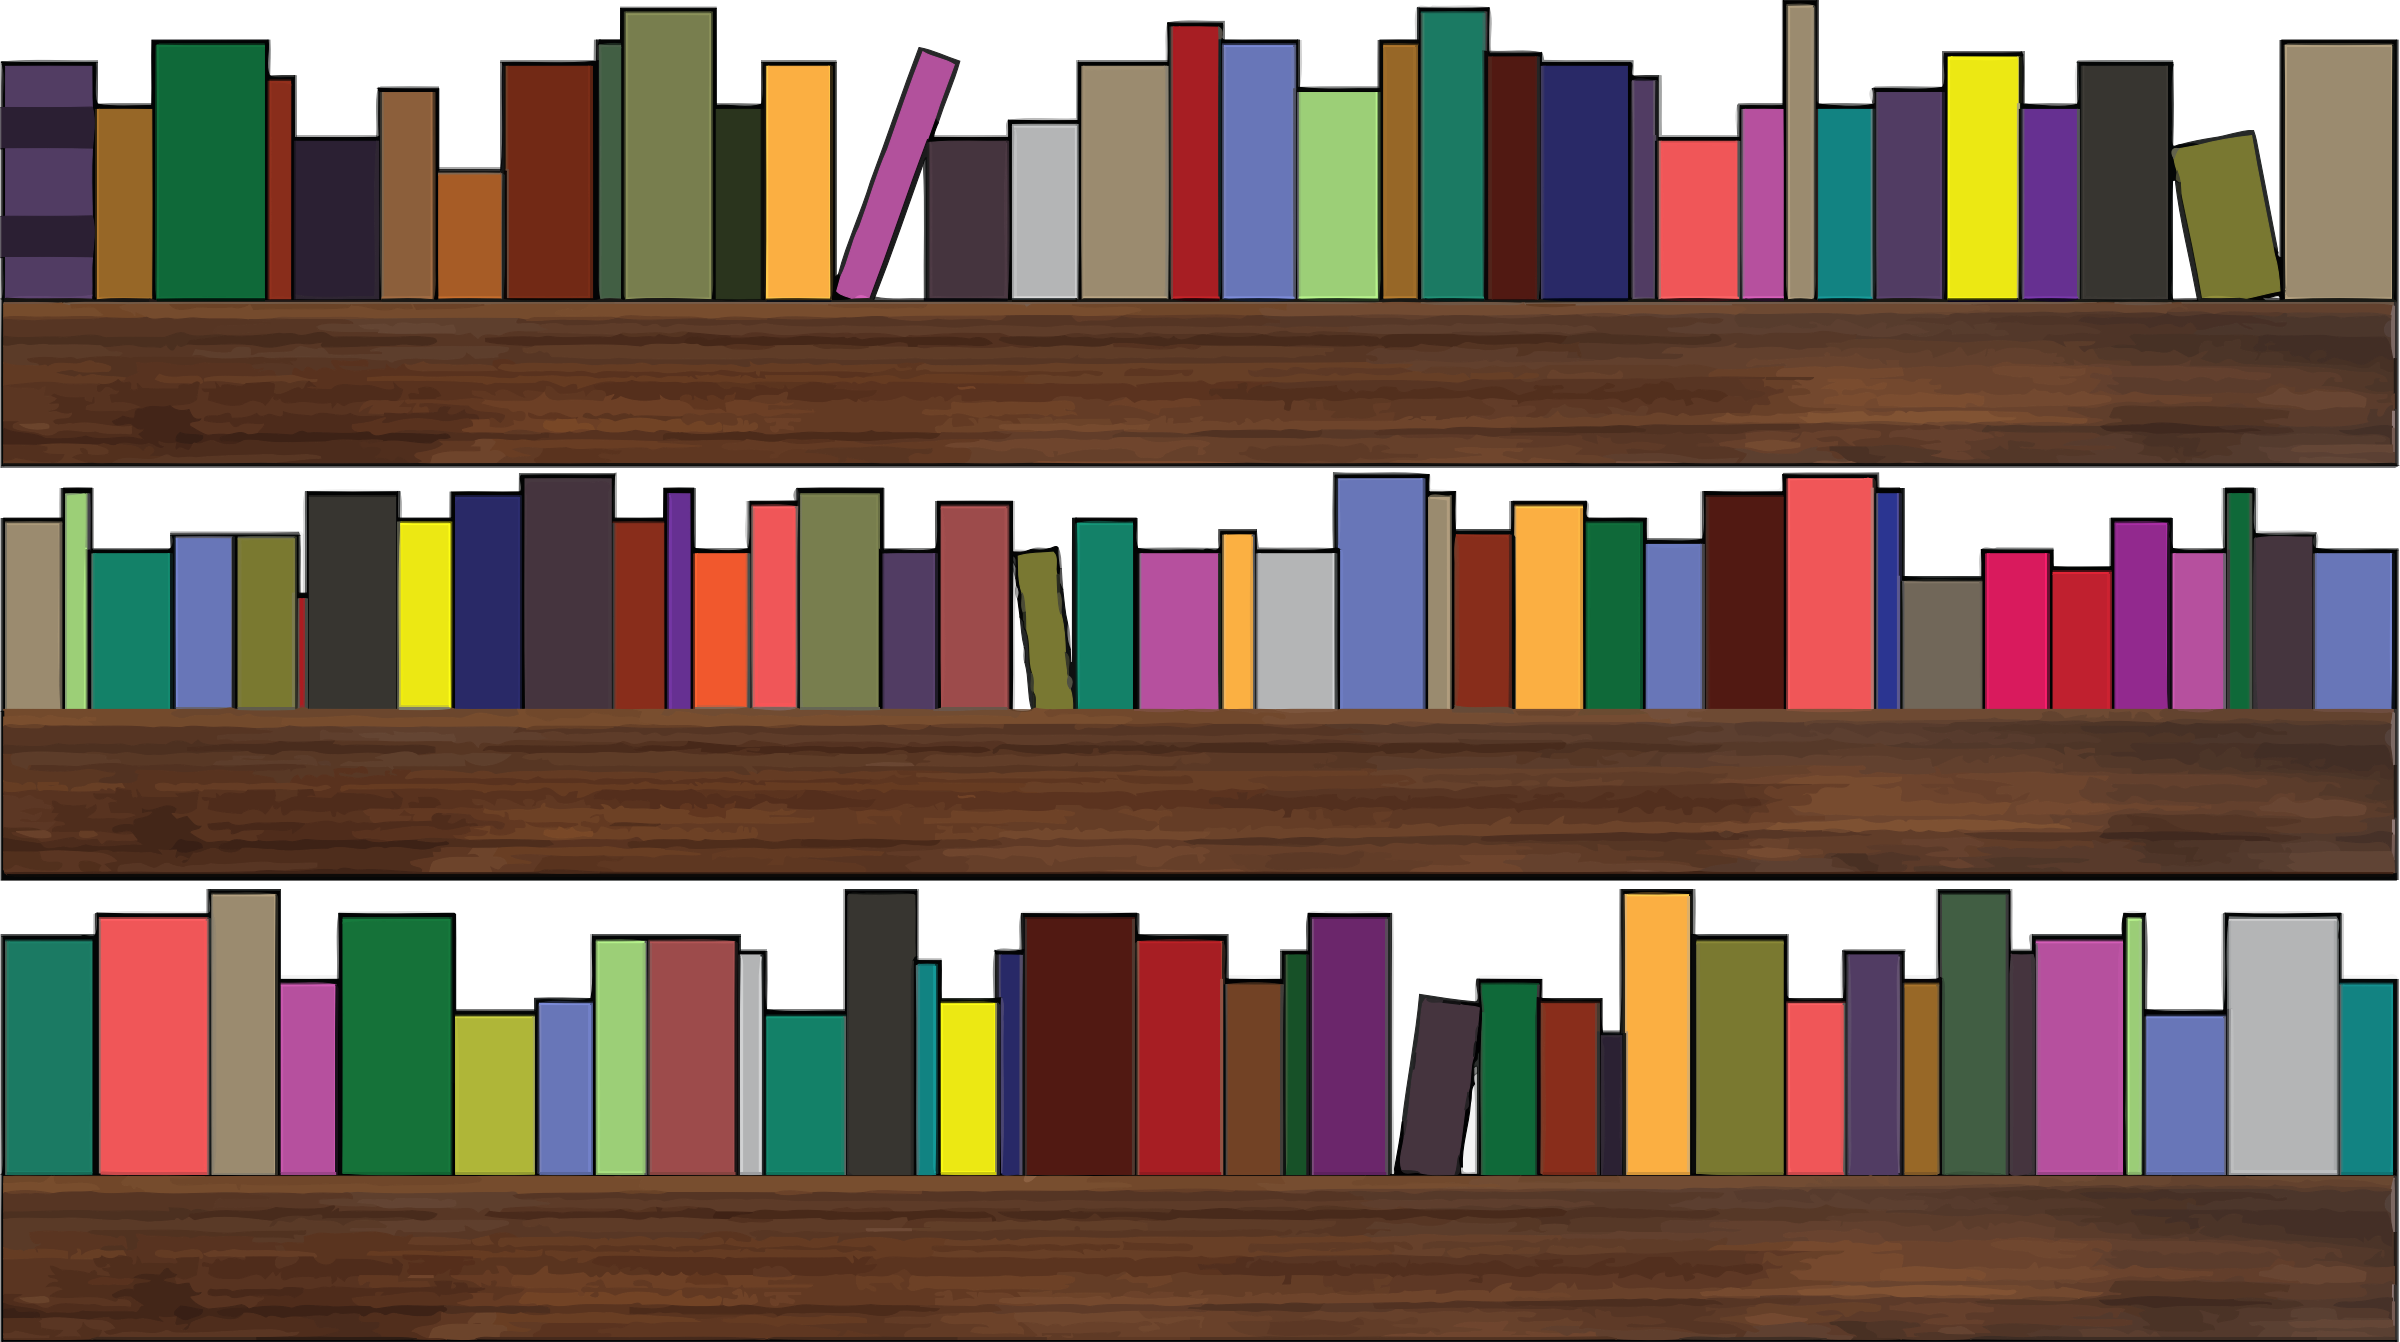 Pictures Of Bookshelves clipart - bookshelves